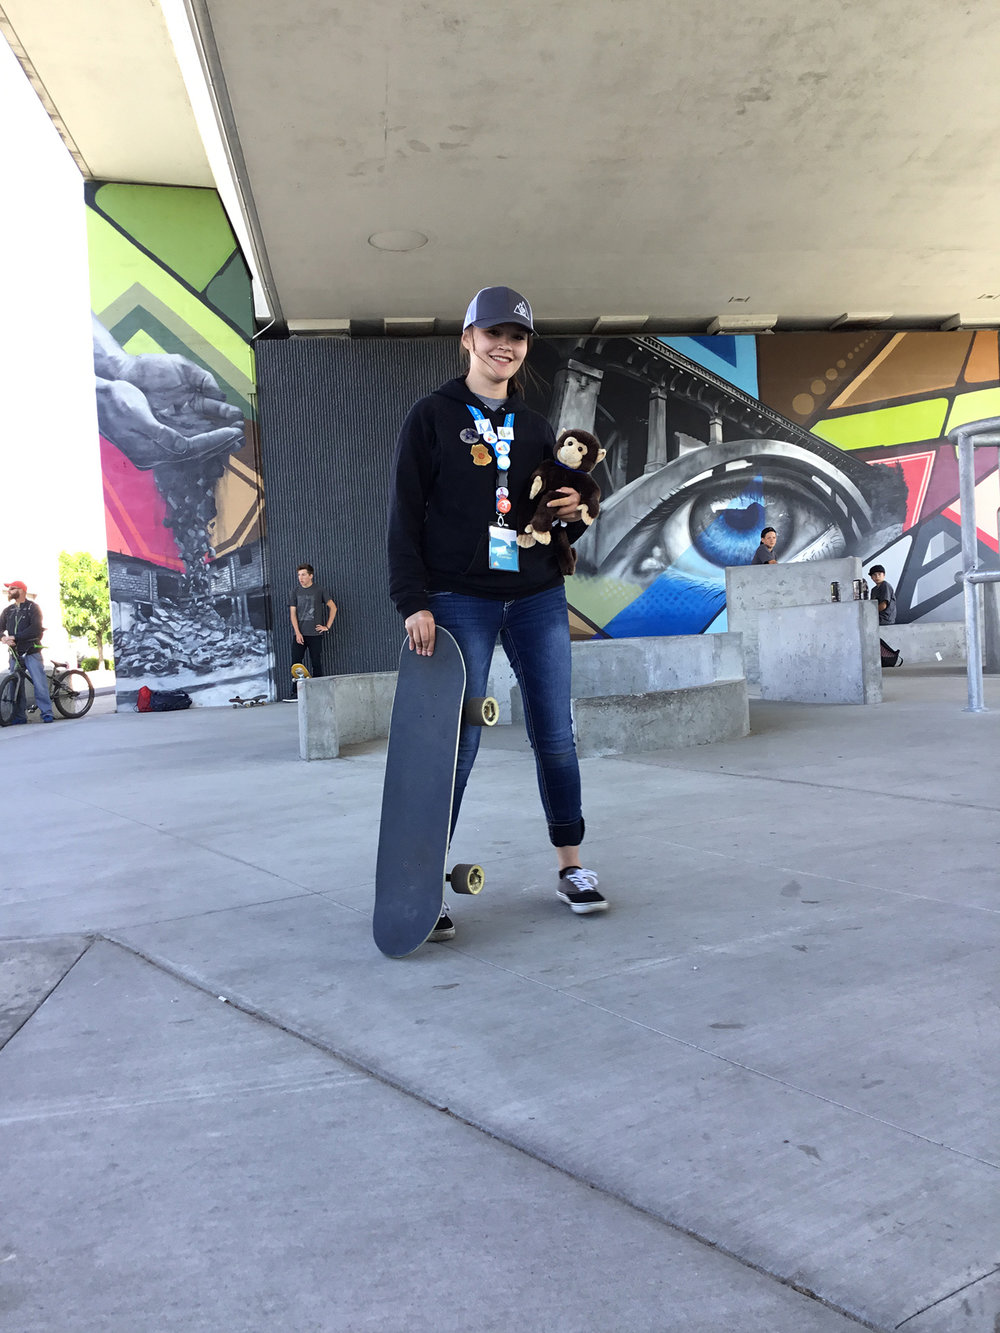 Niki, one of our very first PTECH students, at Rhodes Skate Park - Boise, ID